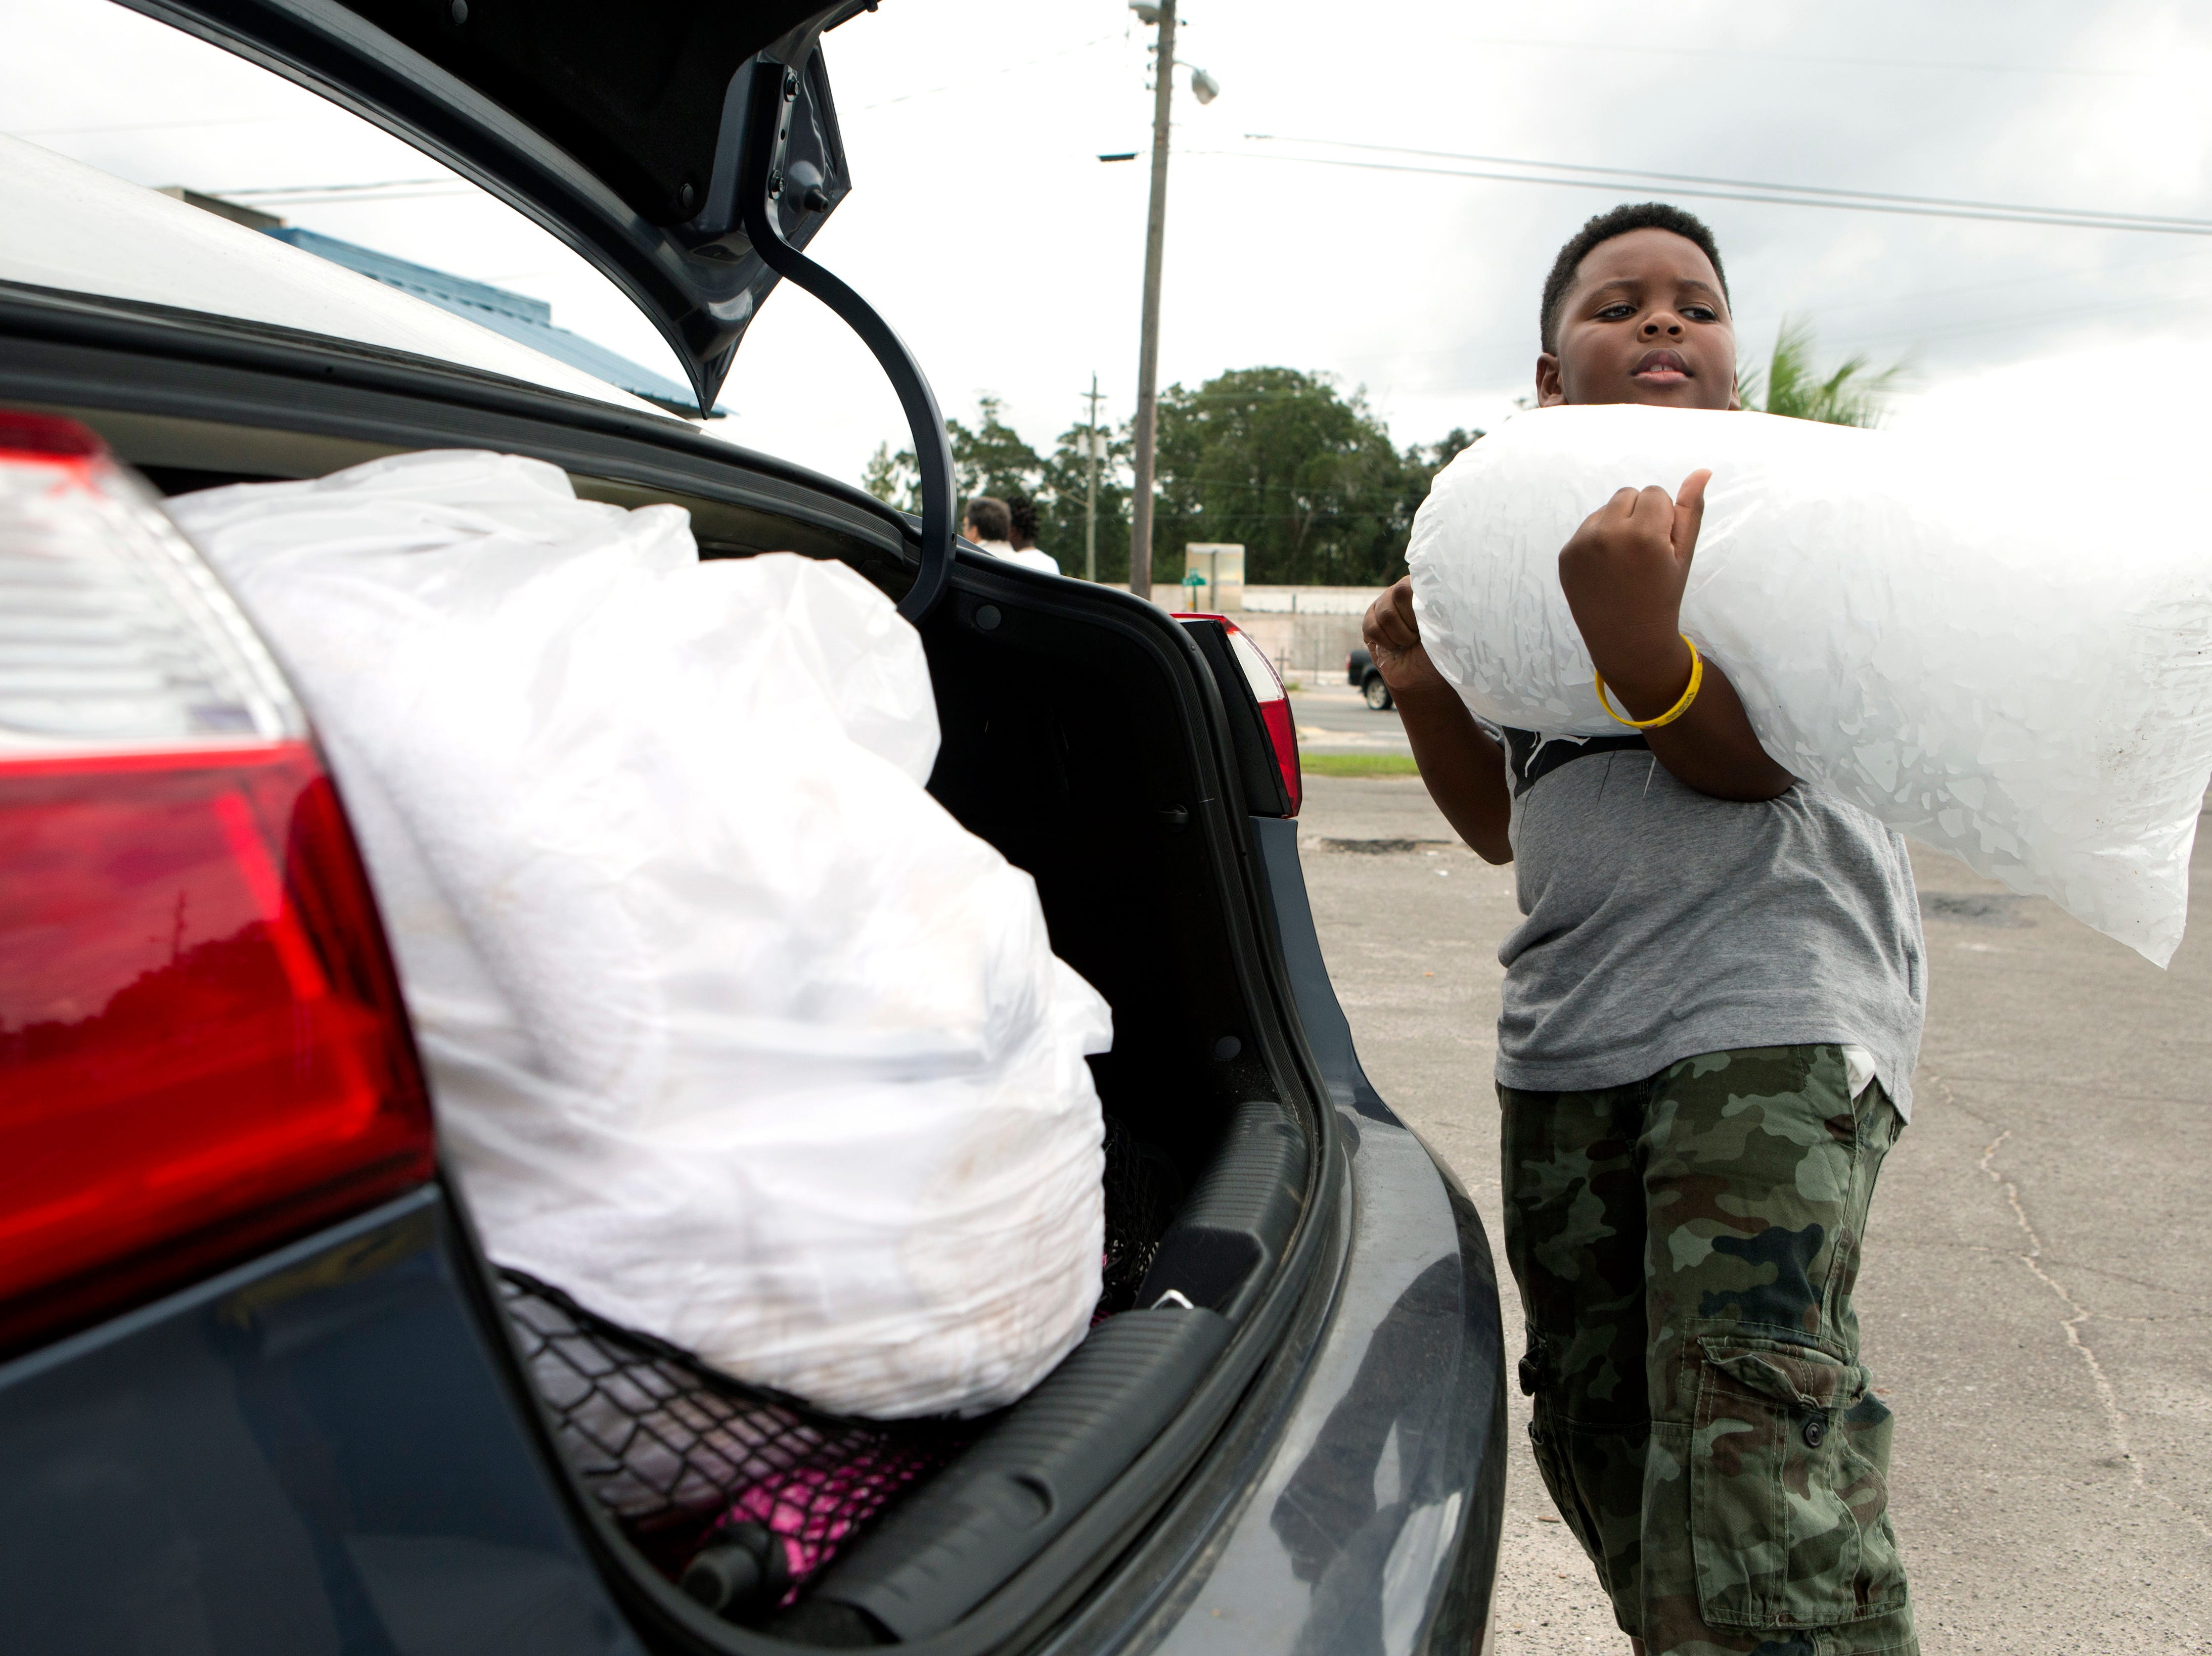 Xavier McKenzie puts a twenty pound bag of ice into his family's car in Panama City, Fla., as Hurricane Michael approaches on Tuesday, Oct.9, 2018. He and his family do not live in a storm surge area, and instead prepared for losing power for days.